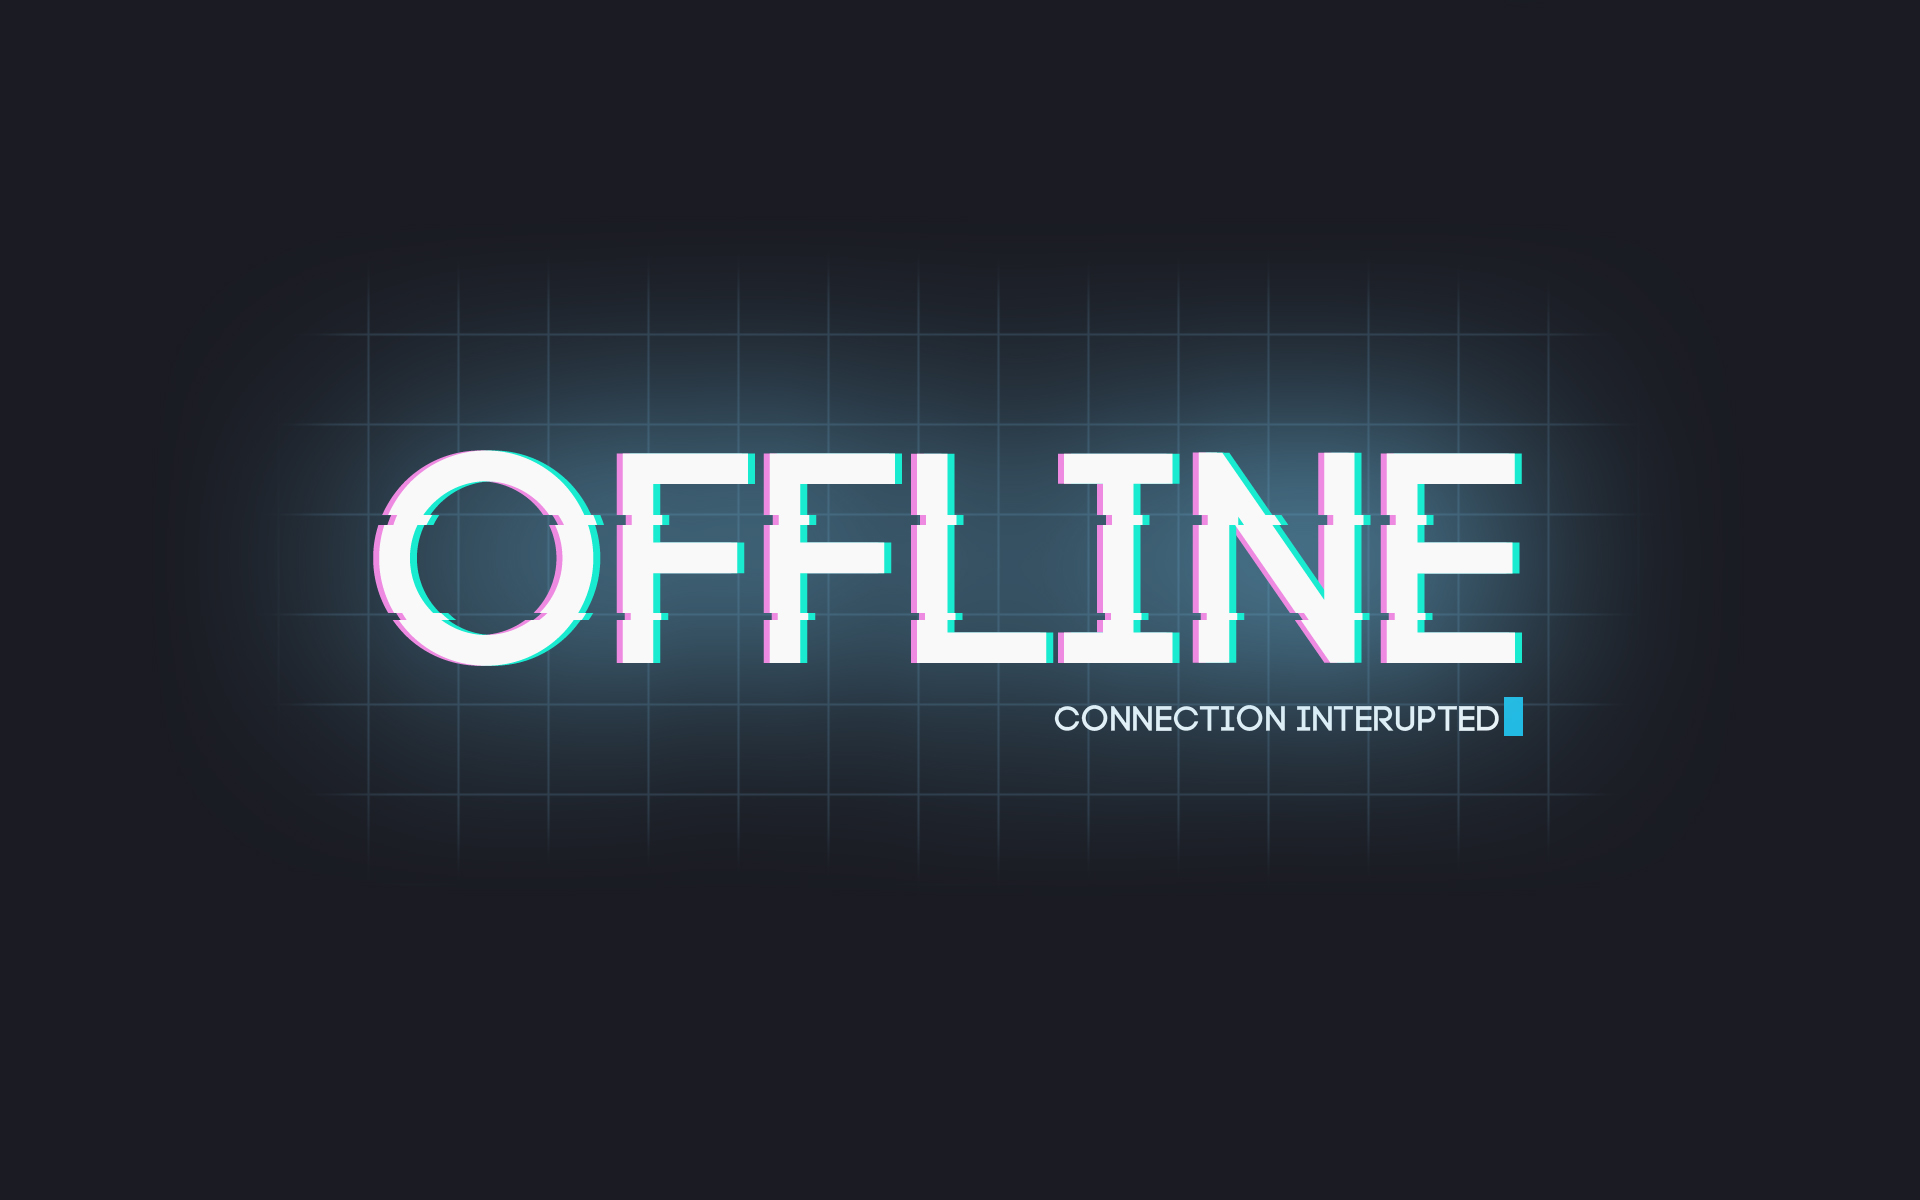 Offline connection interupted